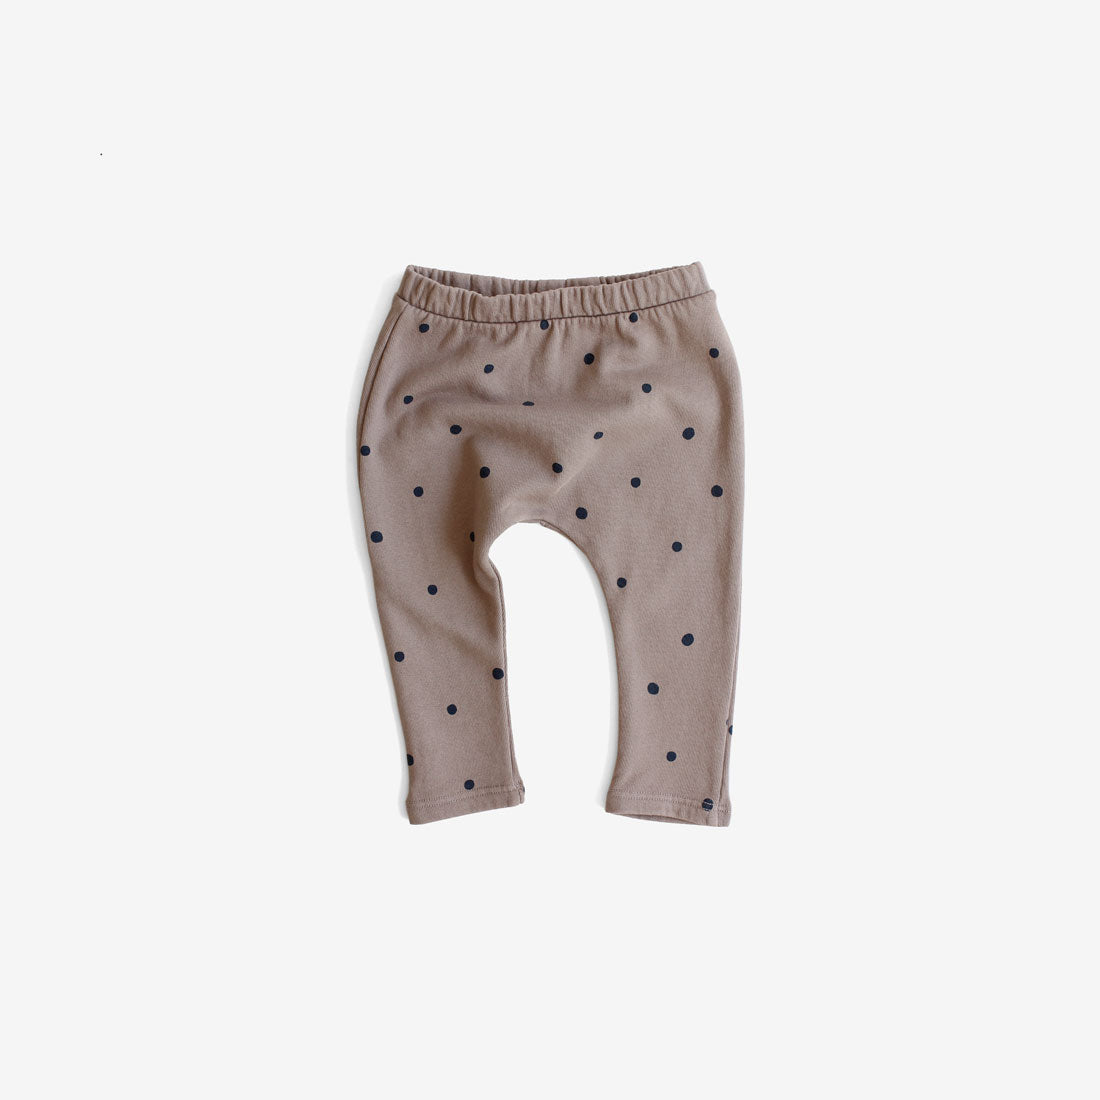 Polka Dot French Terry Baby Sweats - Taupe